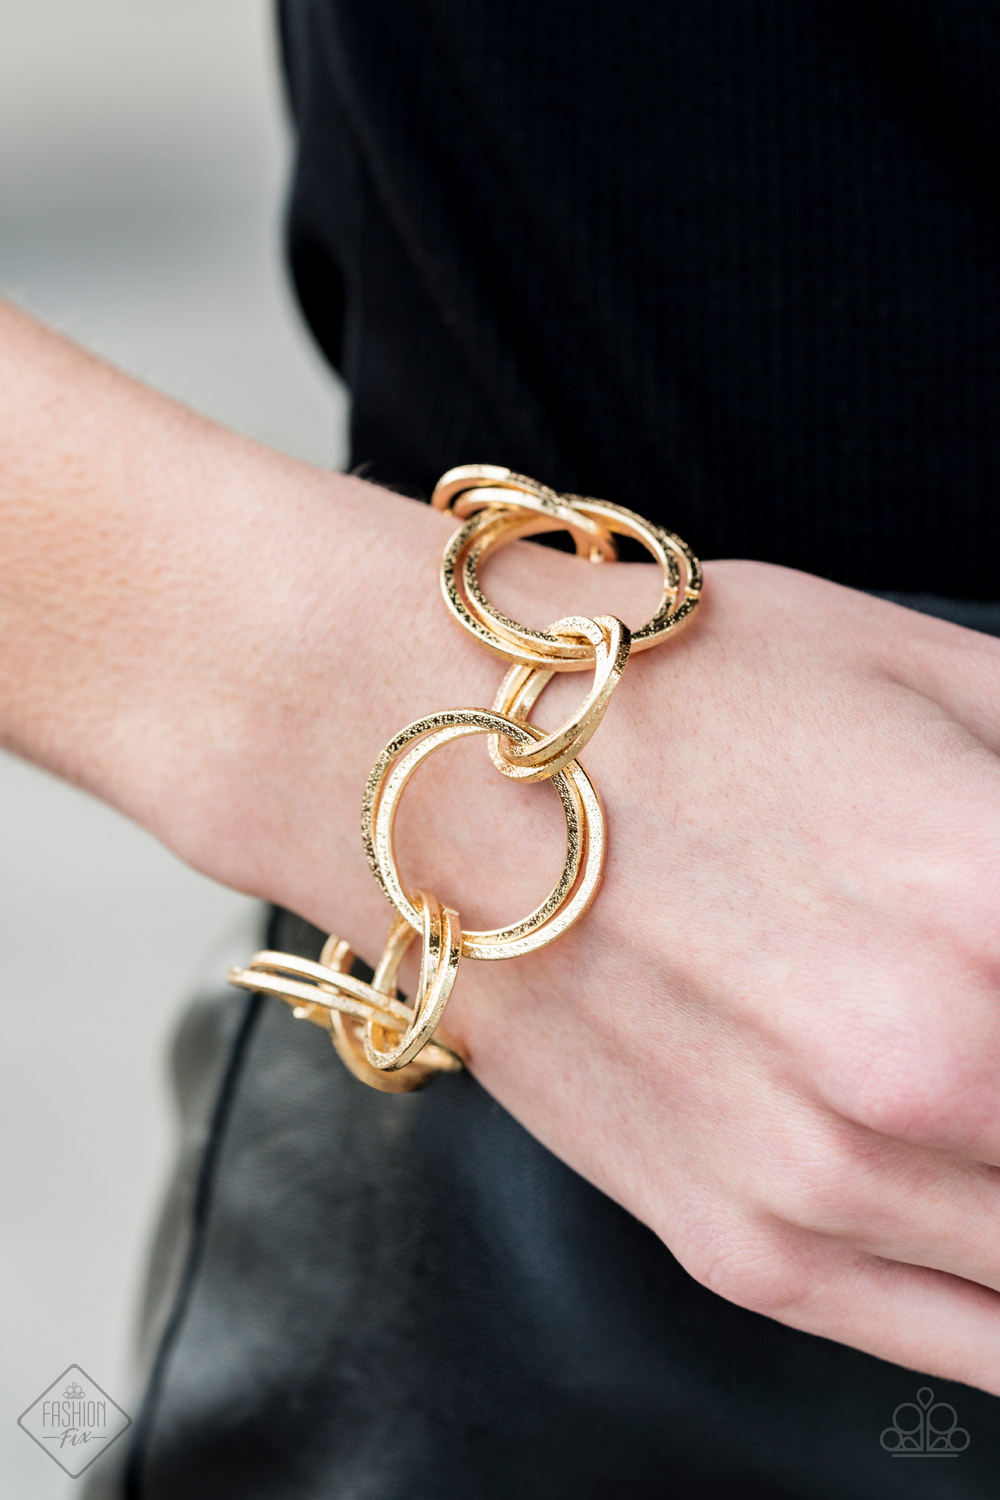 Gold Rings Bracelet by Paparazzi $5.00 my-bling.com